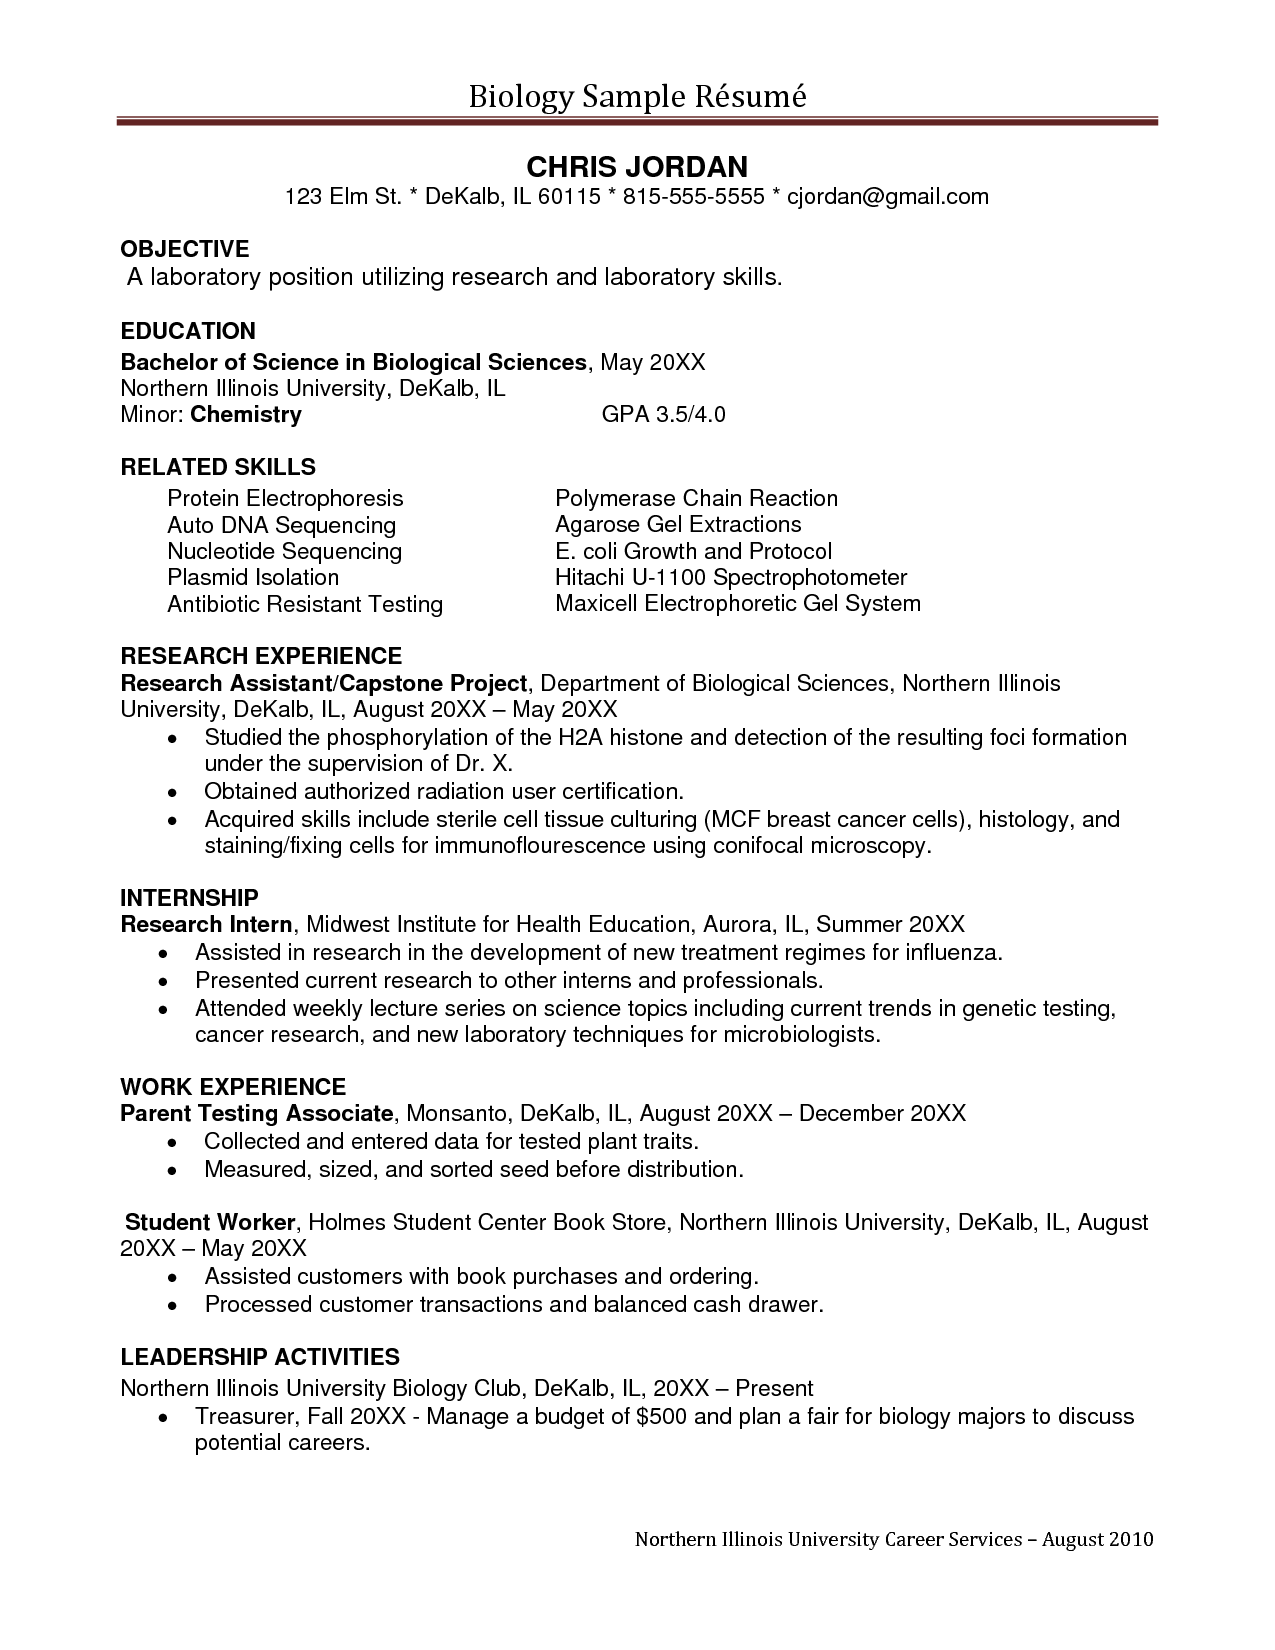 How To Write An Effective Cover Letter Sample Undergraduate Research Assistant Resume Sampleĺ